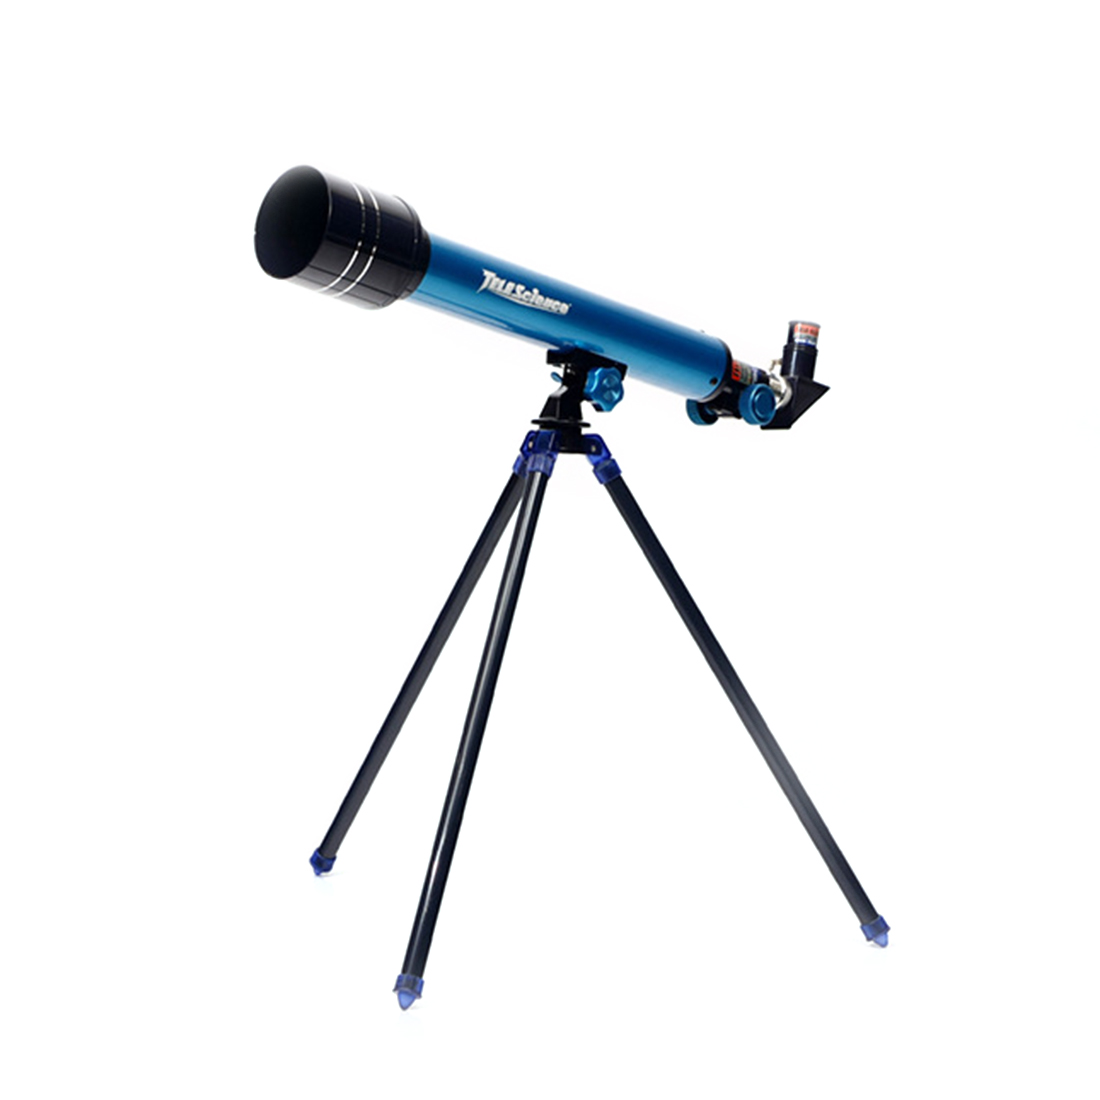 Surwish 30/60 Times with 50mm Big Eyepiece Navigation Astronomical Telescope for Star Finding цена